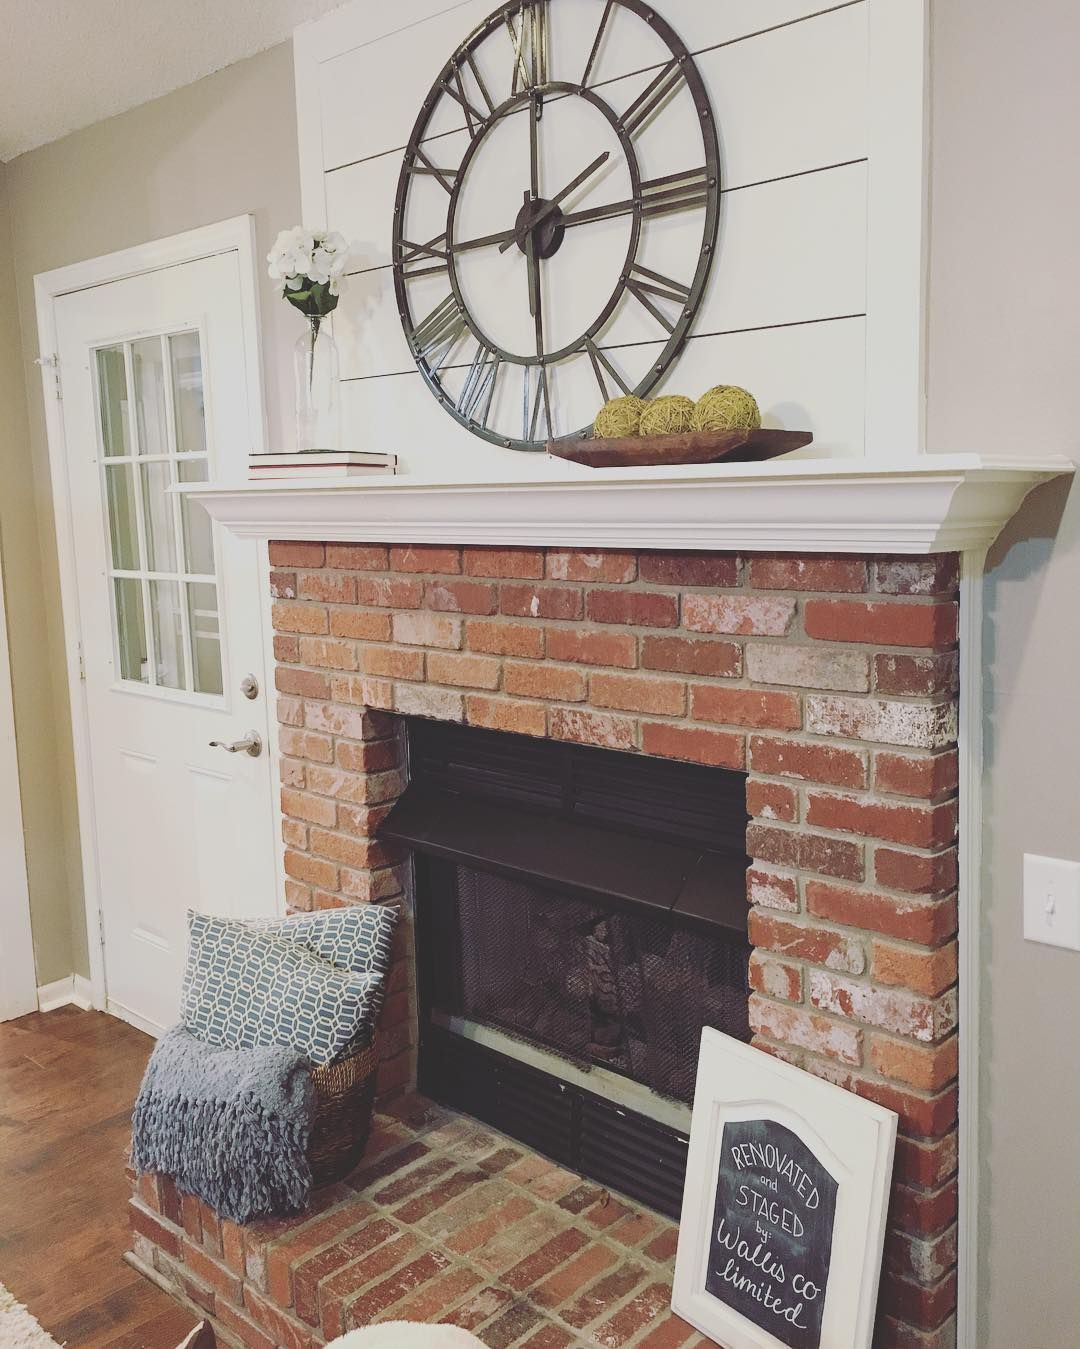 Shiplap Above The Fireplace 3 A Subtle Way To Add Some Character